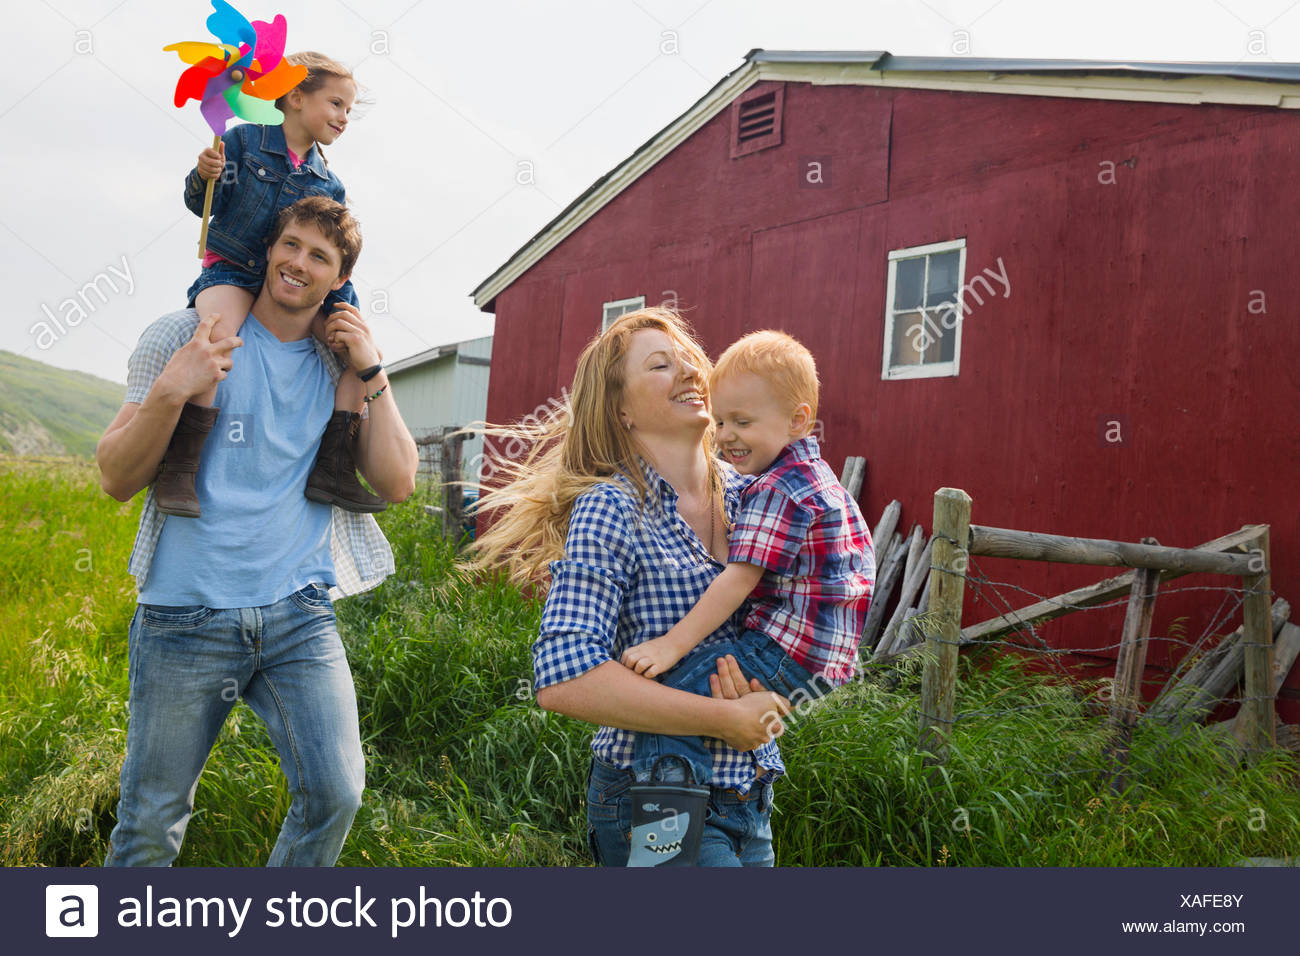 Parents carrying children outside barn - Stock Image